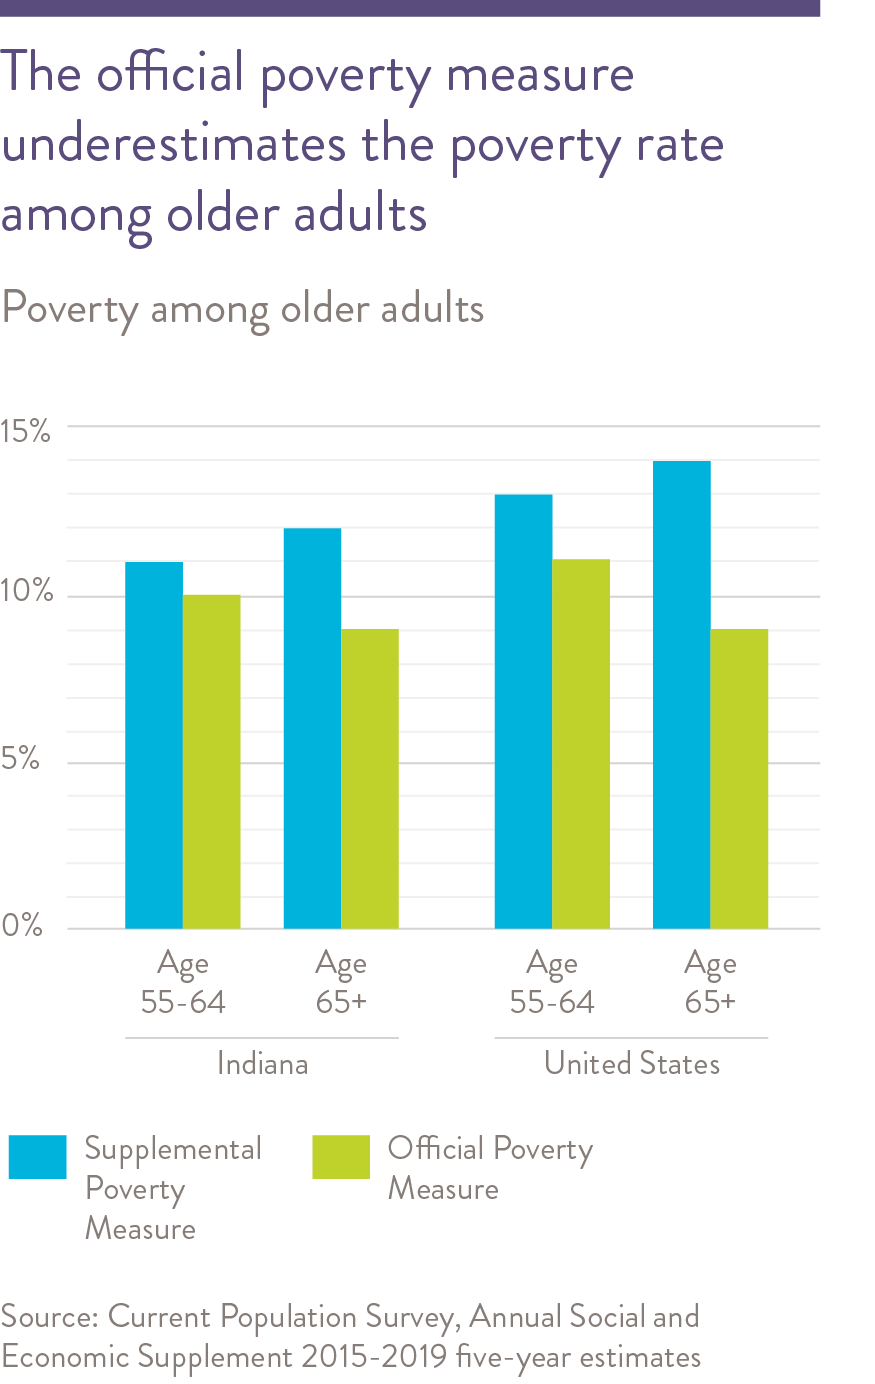 Poverty for older adults in Indiana has increased since 2011